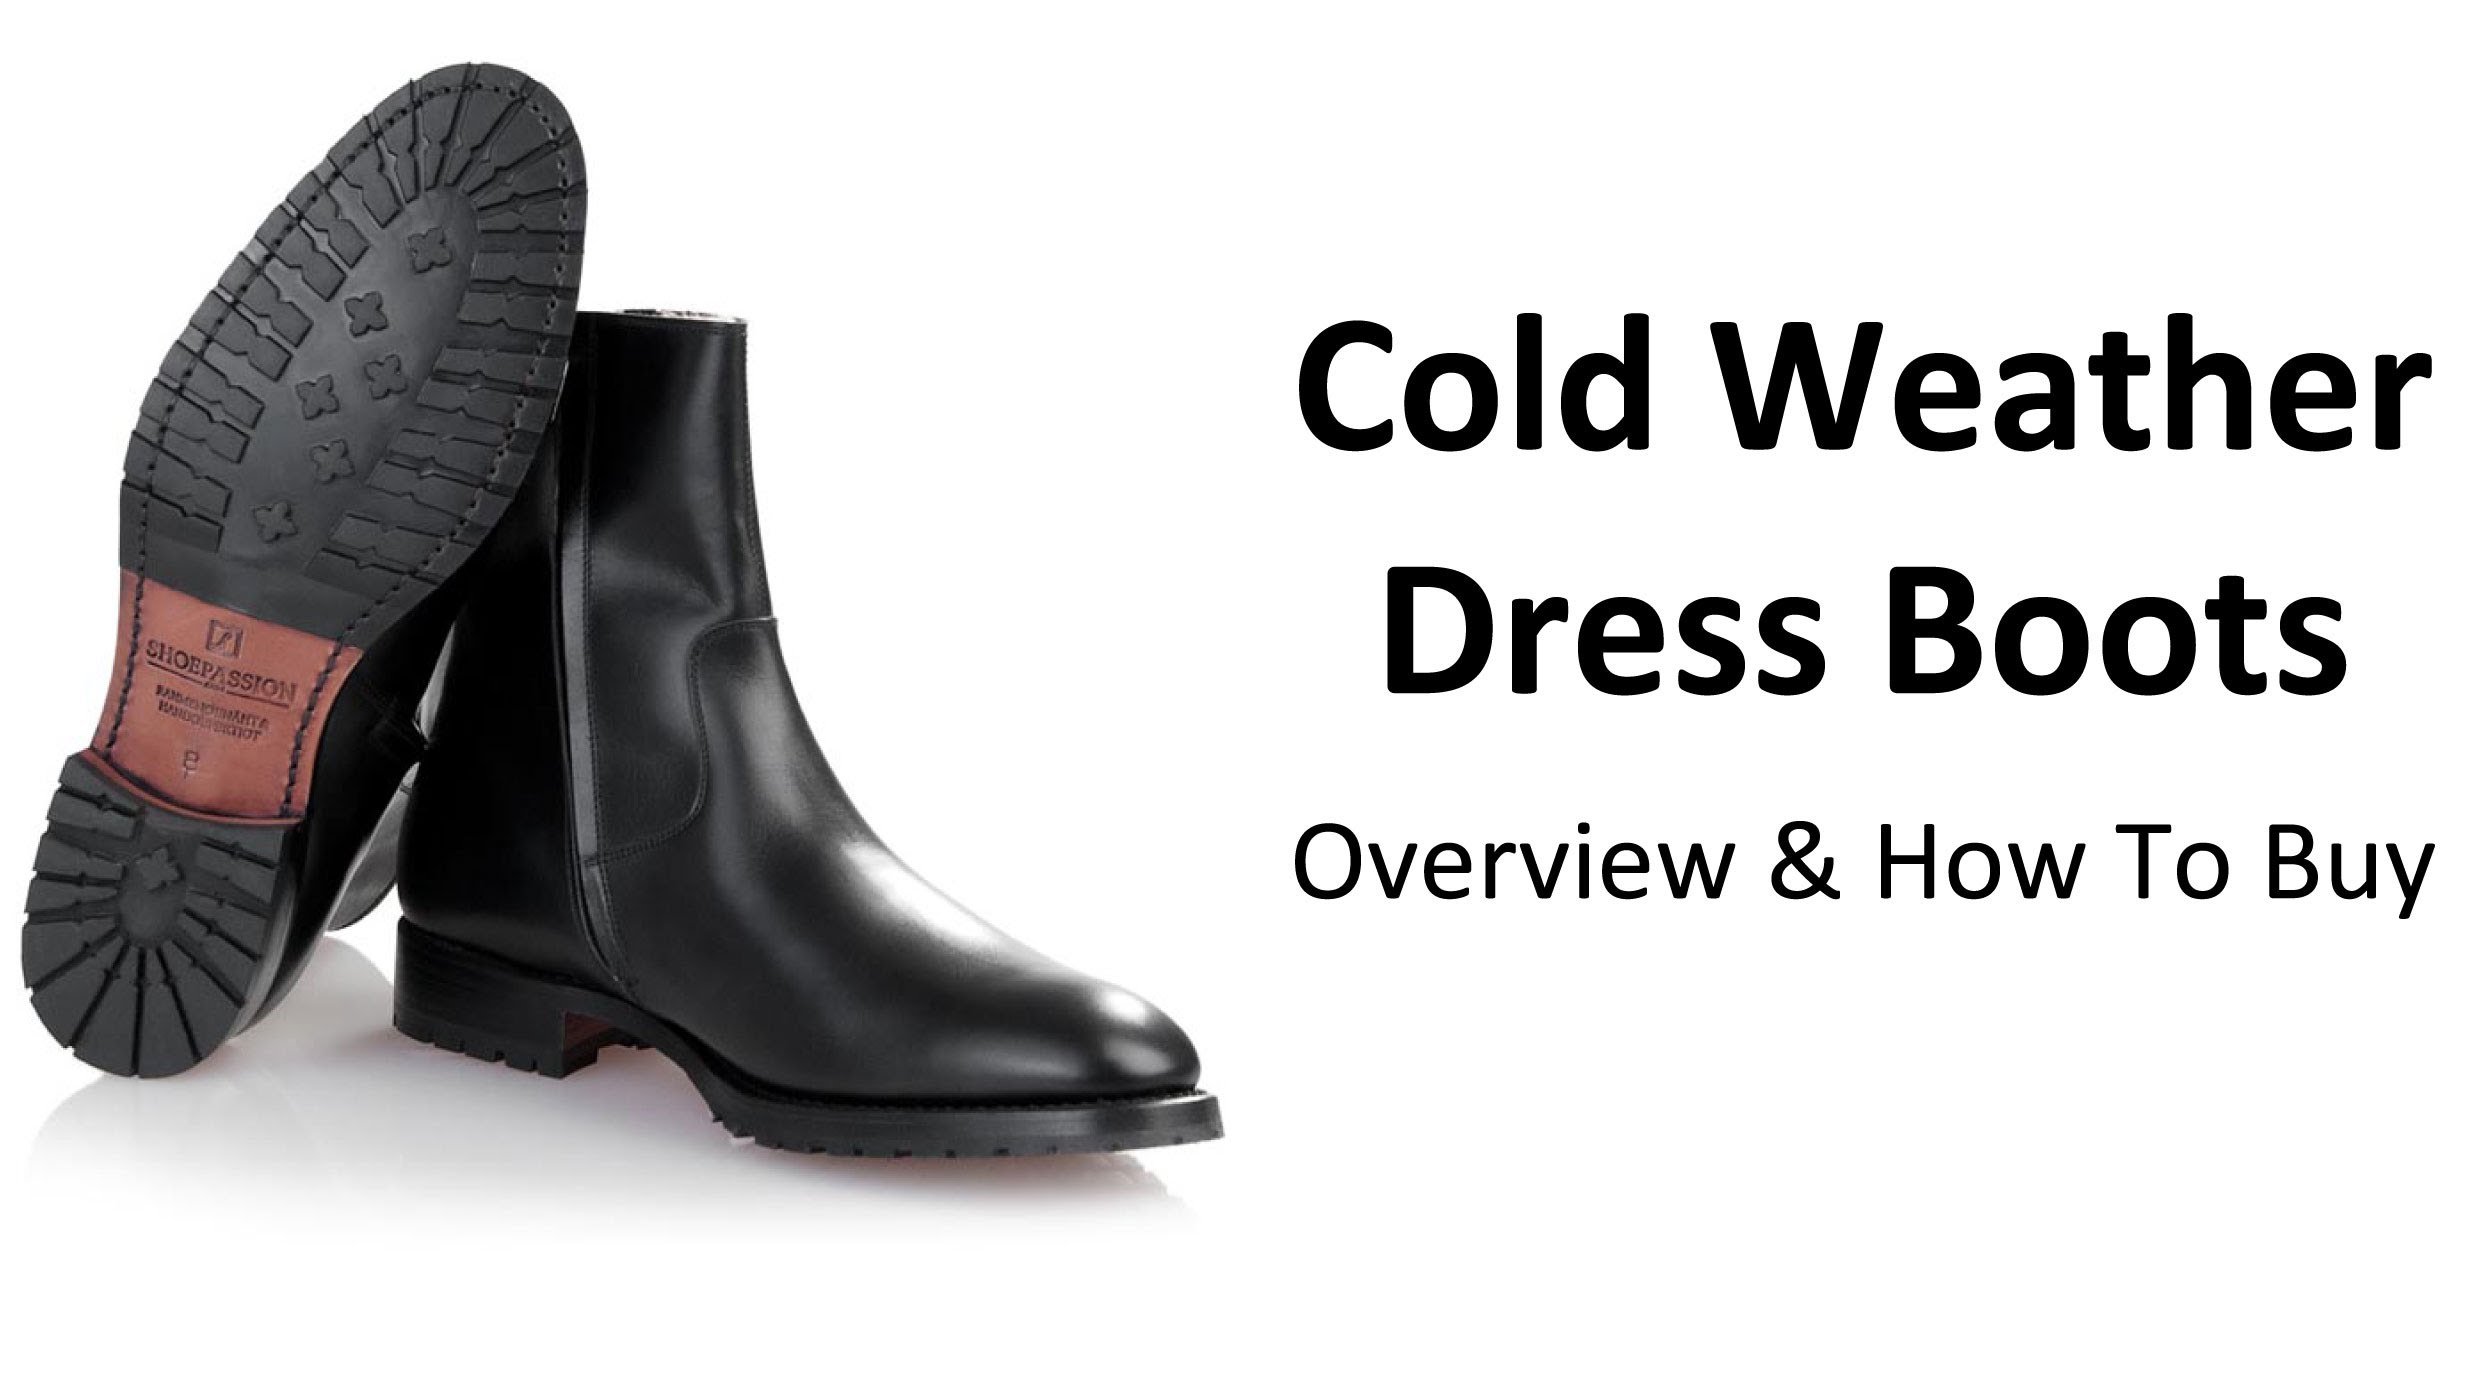 Mens Waterproof Dress Boots BEyLS7Ci